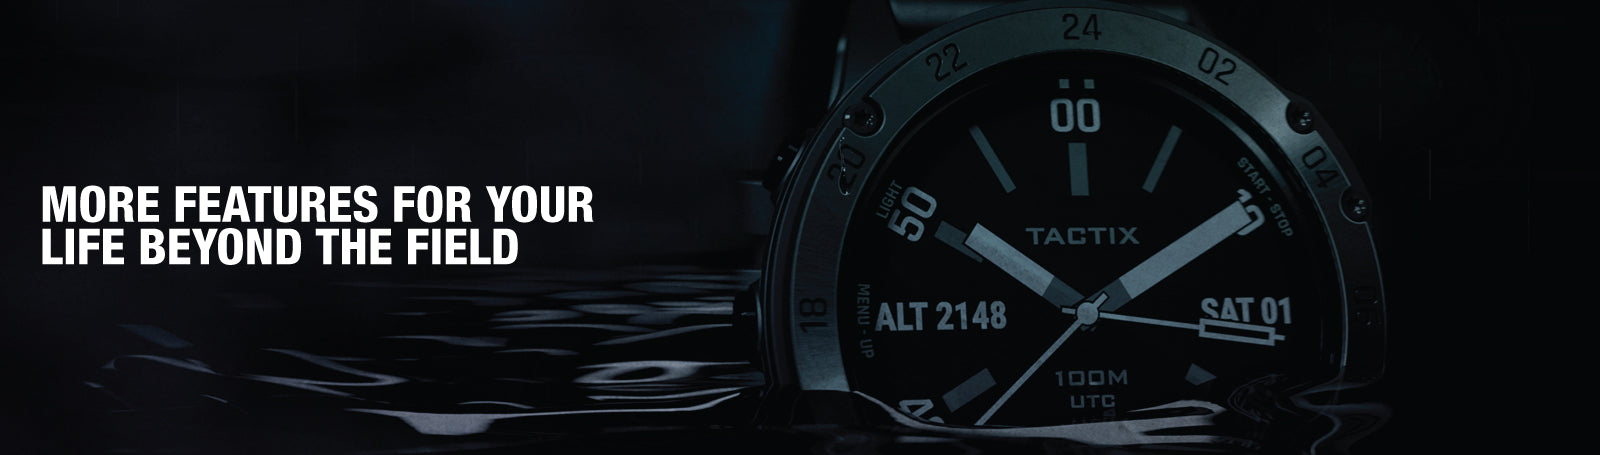 Garmin tactix Delta Sapphire Edition - More features for your life beyond the field.